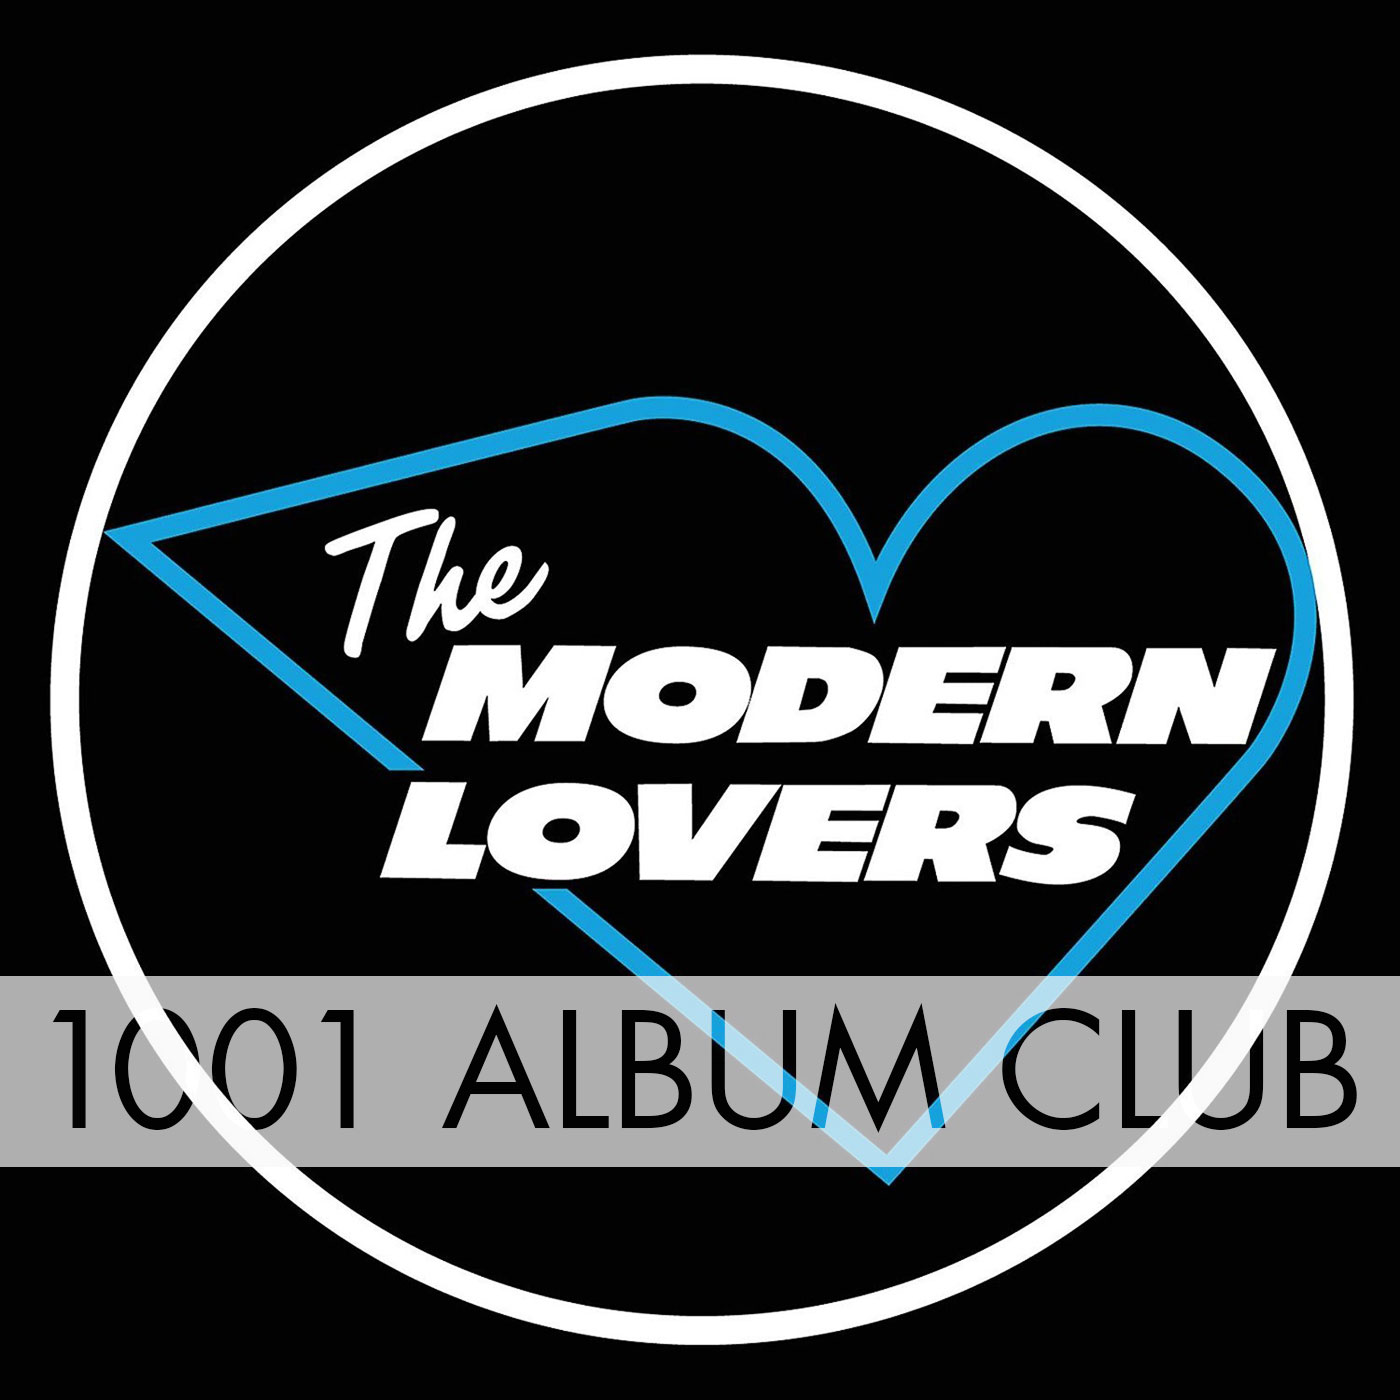 350 The Modern Lovers - The Modern Lovers